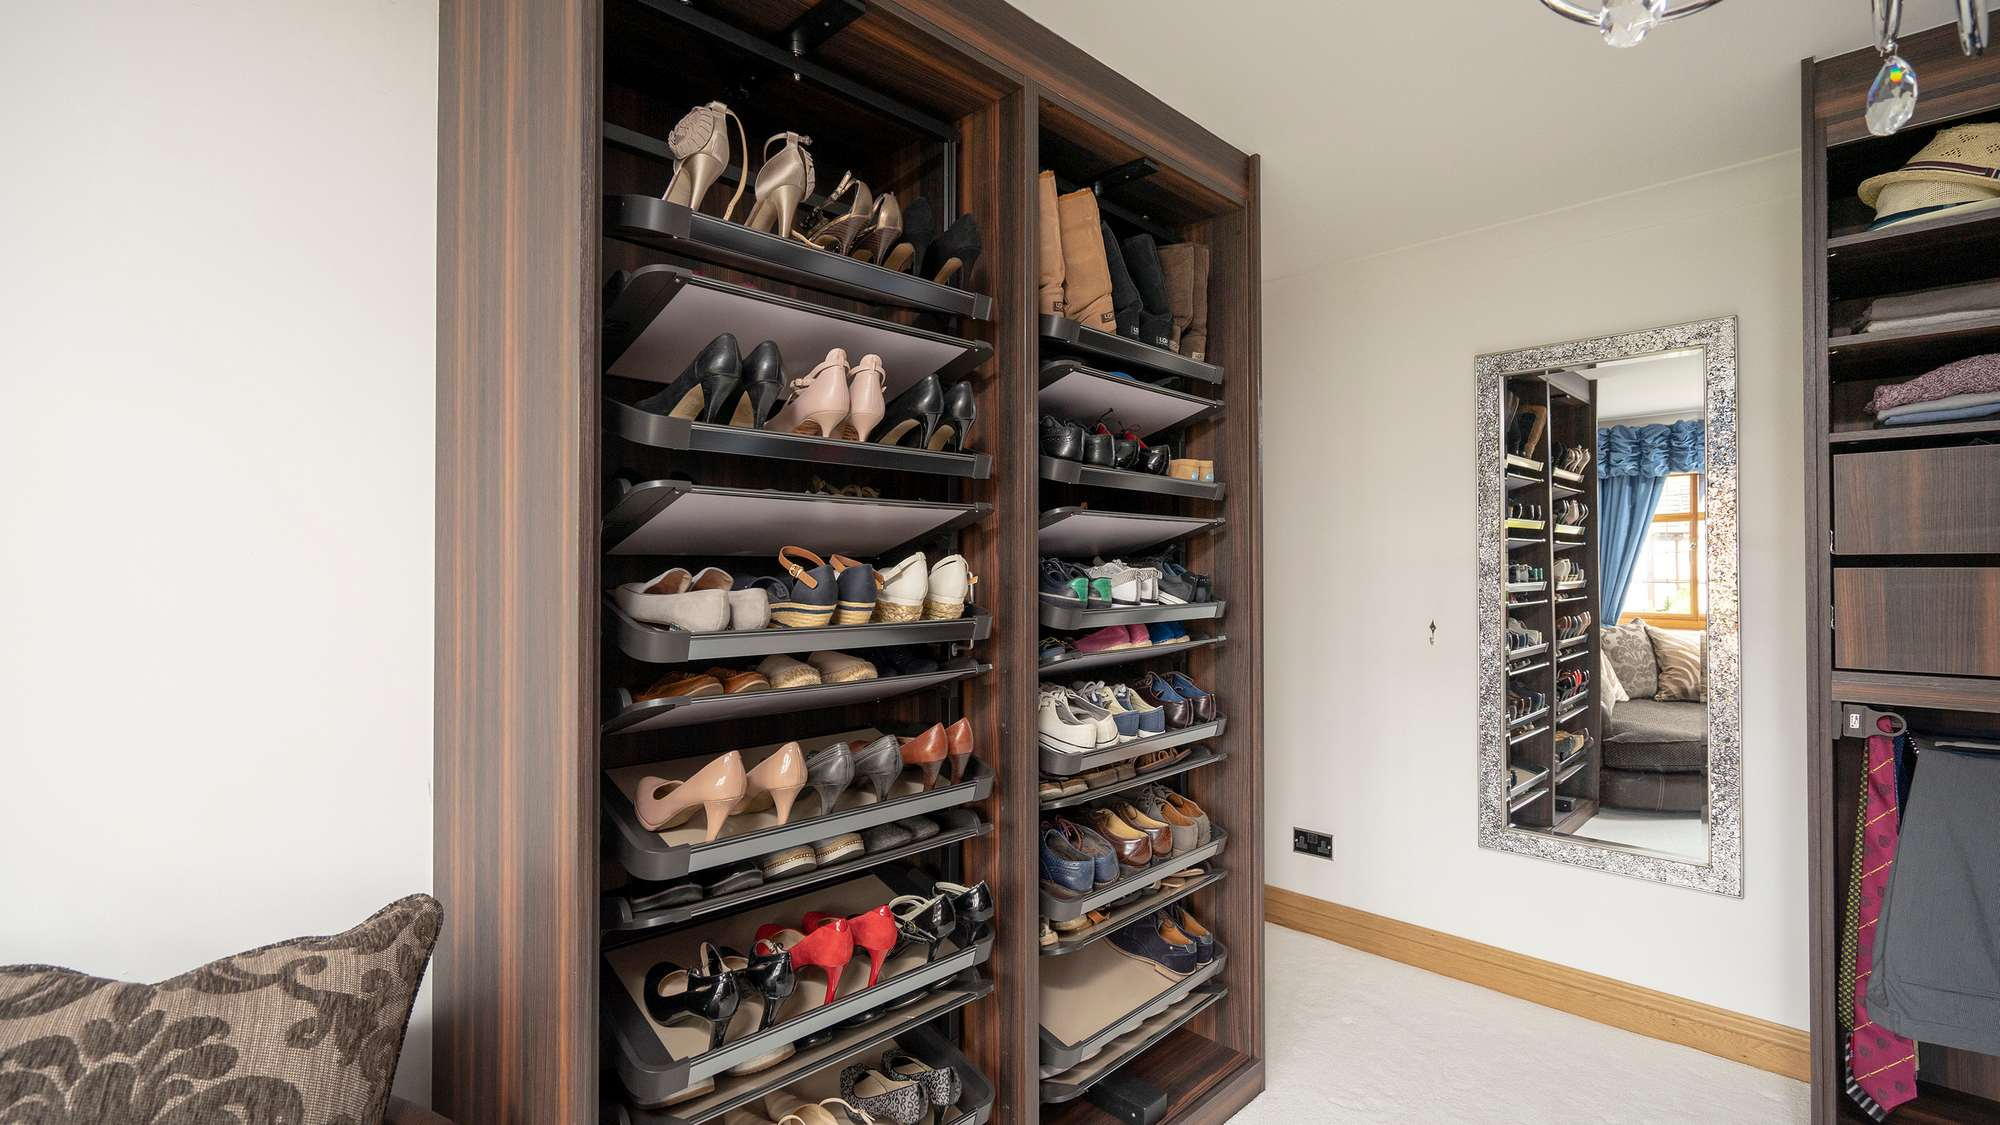 Close up of the rotating shoe racks.